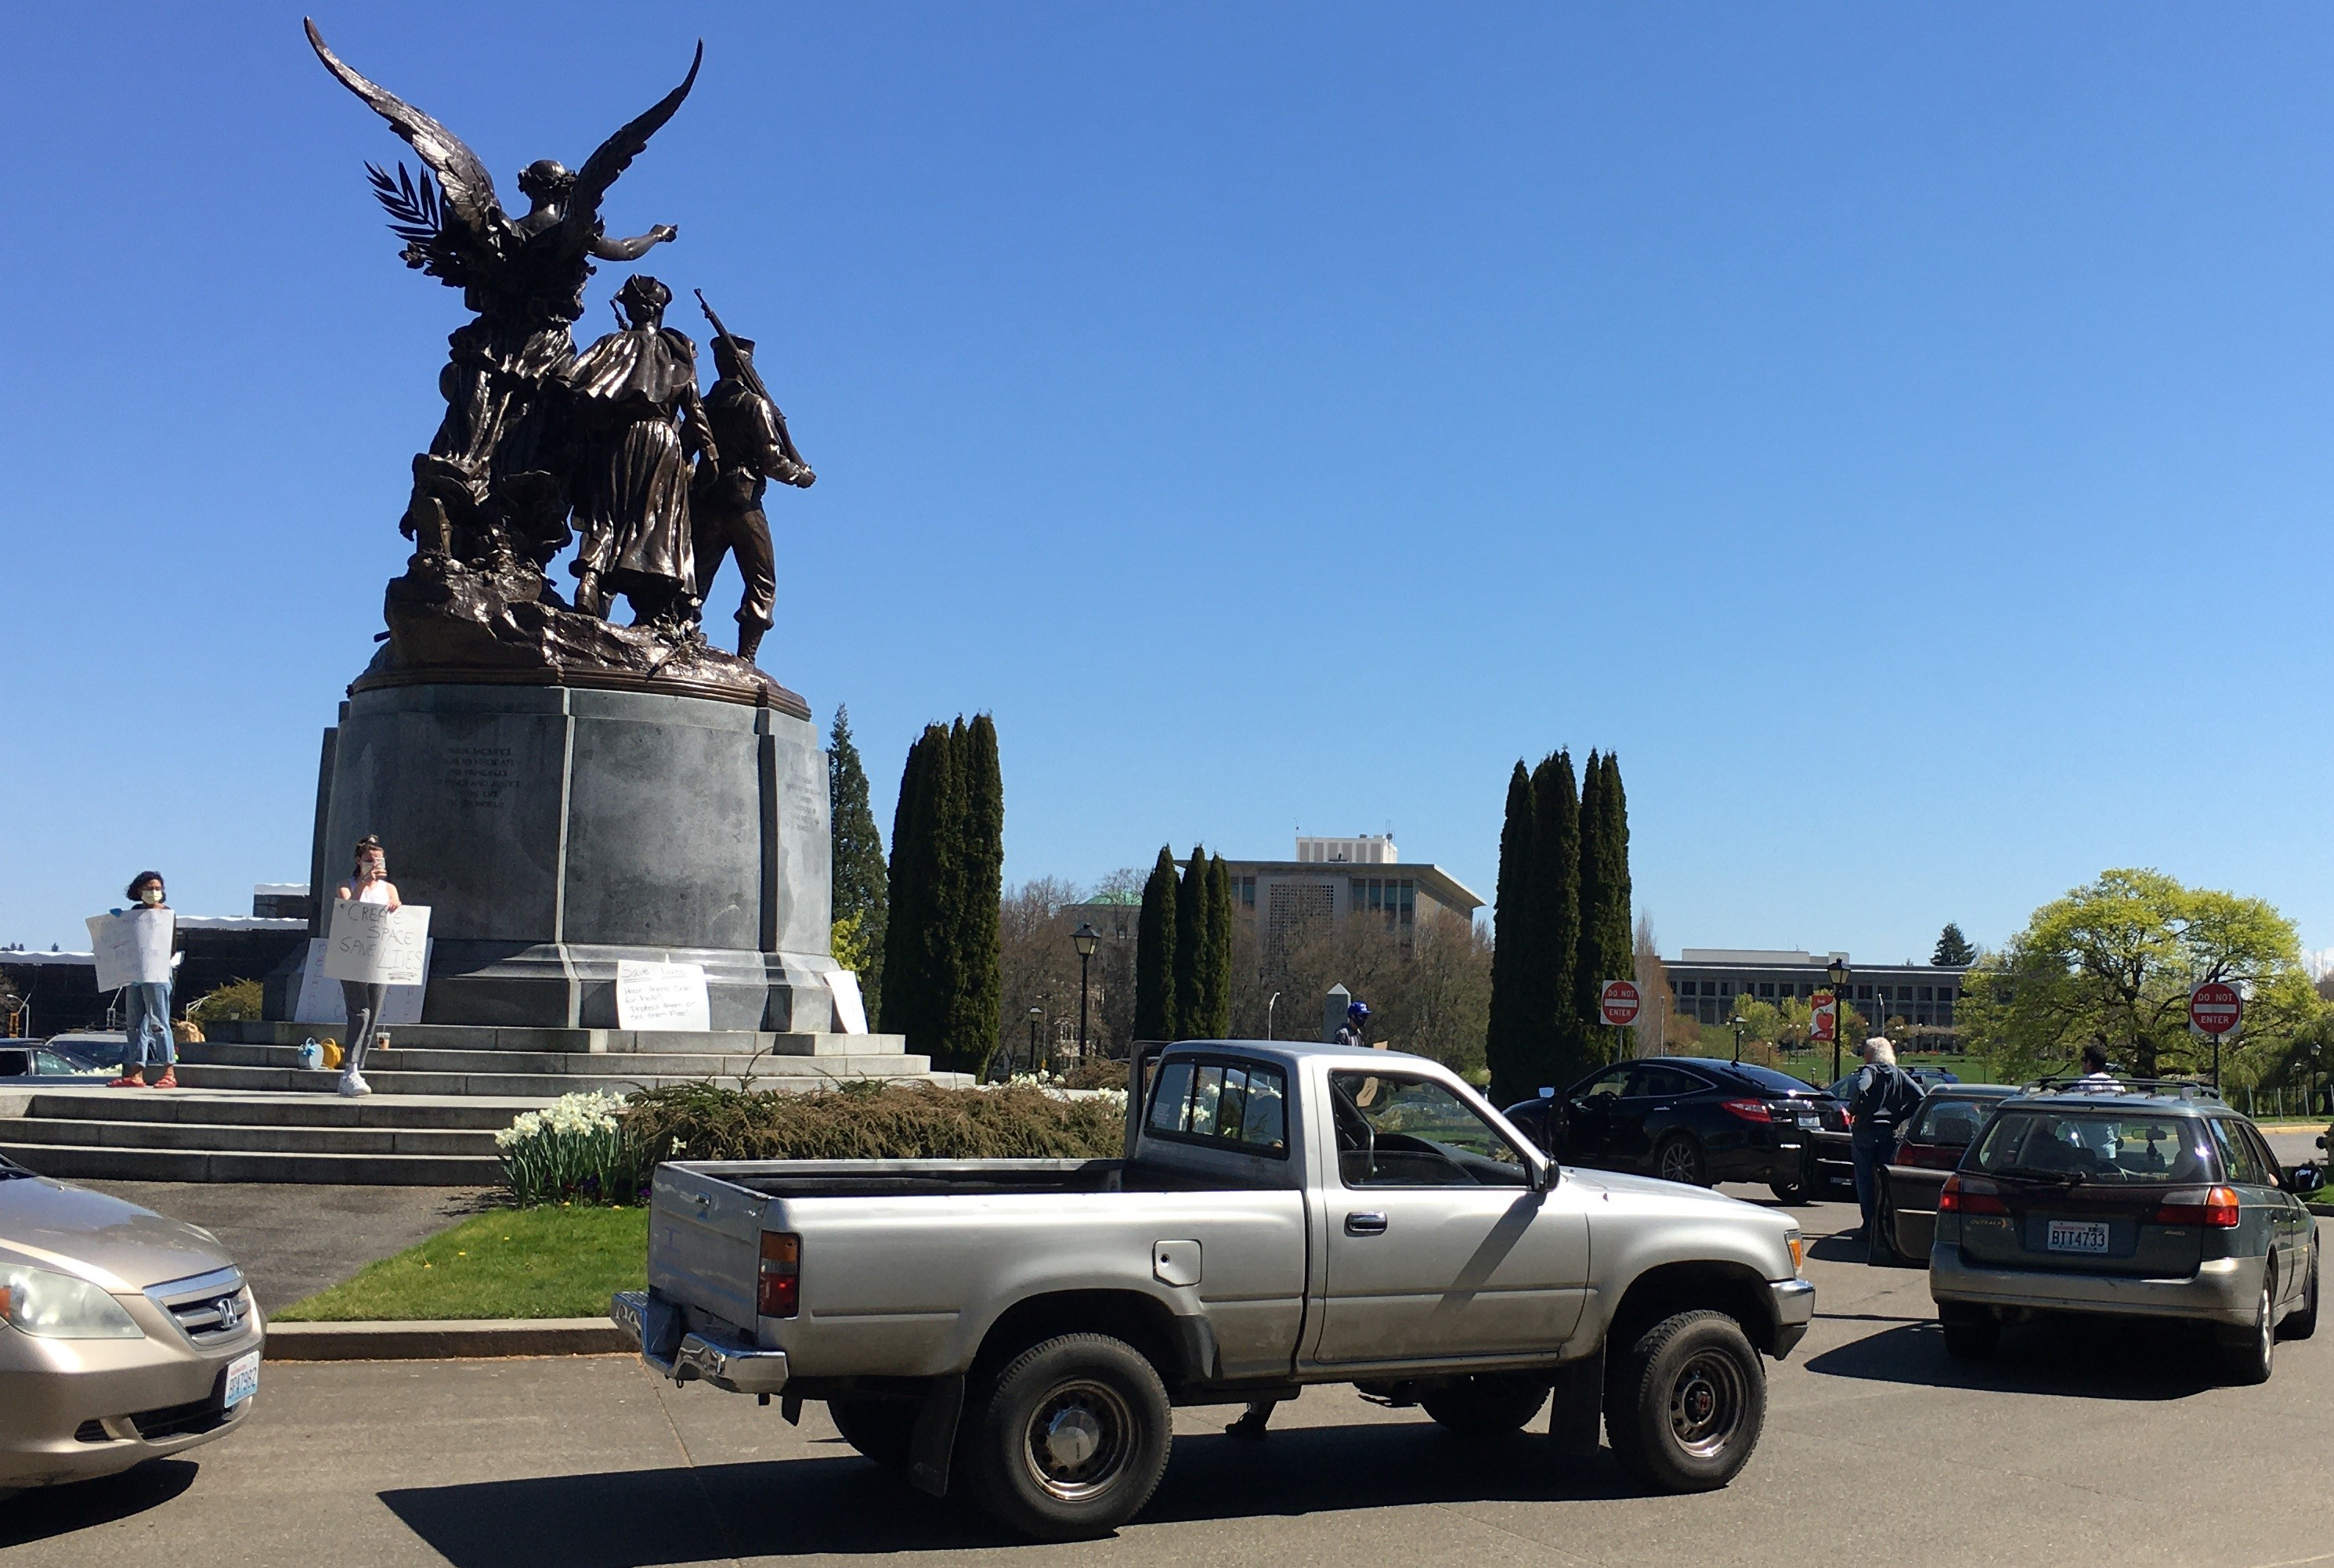 Protestors in cars, Olympia, Wash., 4/16/20